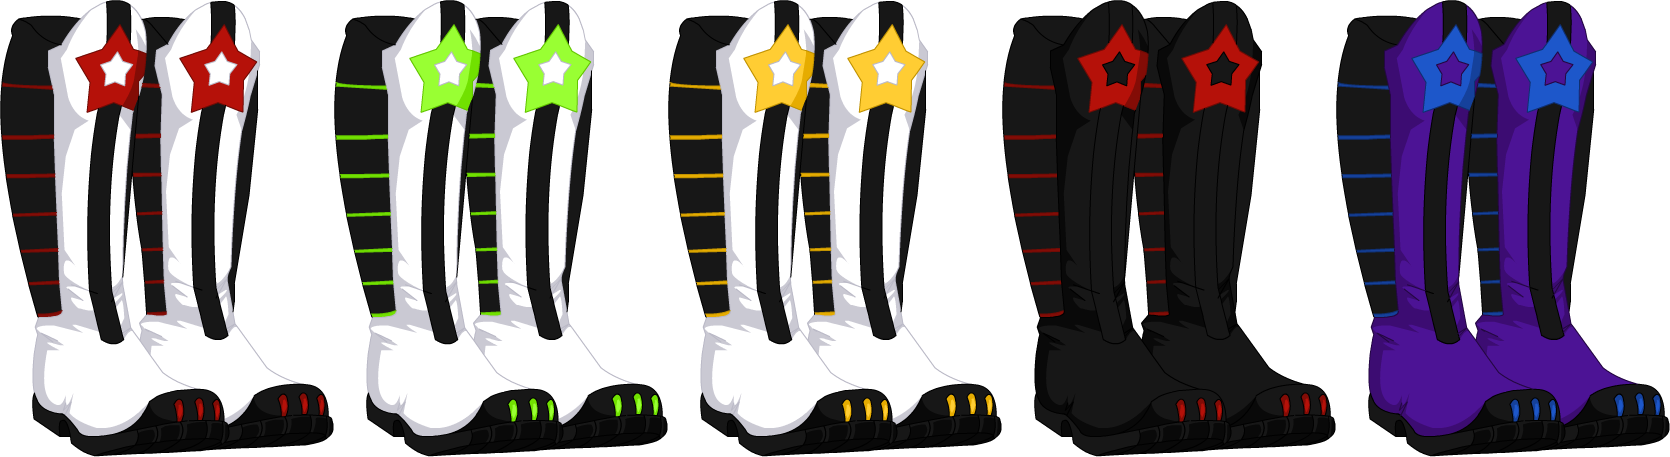 Jan. 2012 Space Ranger Boots